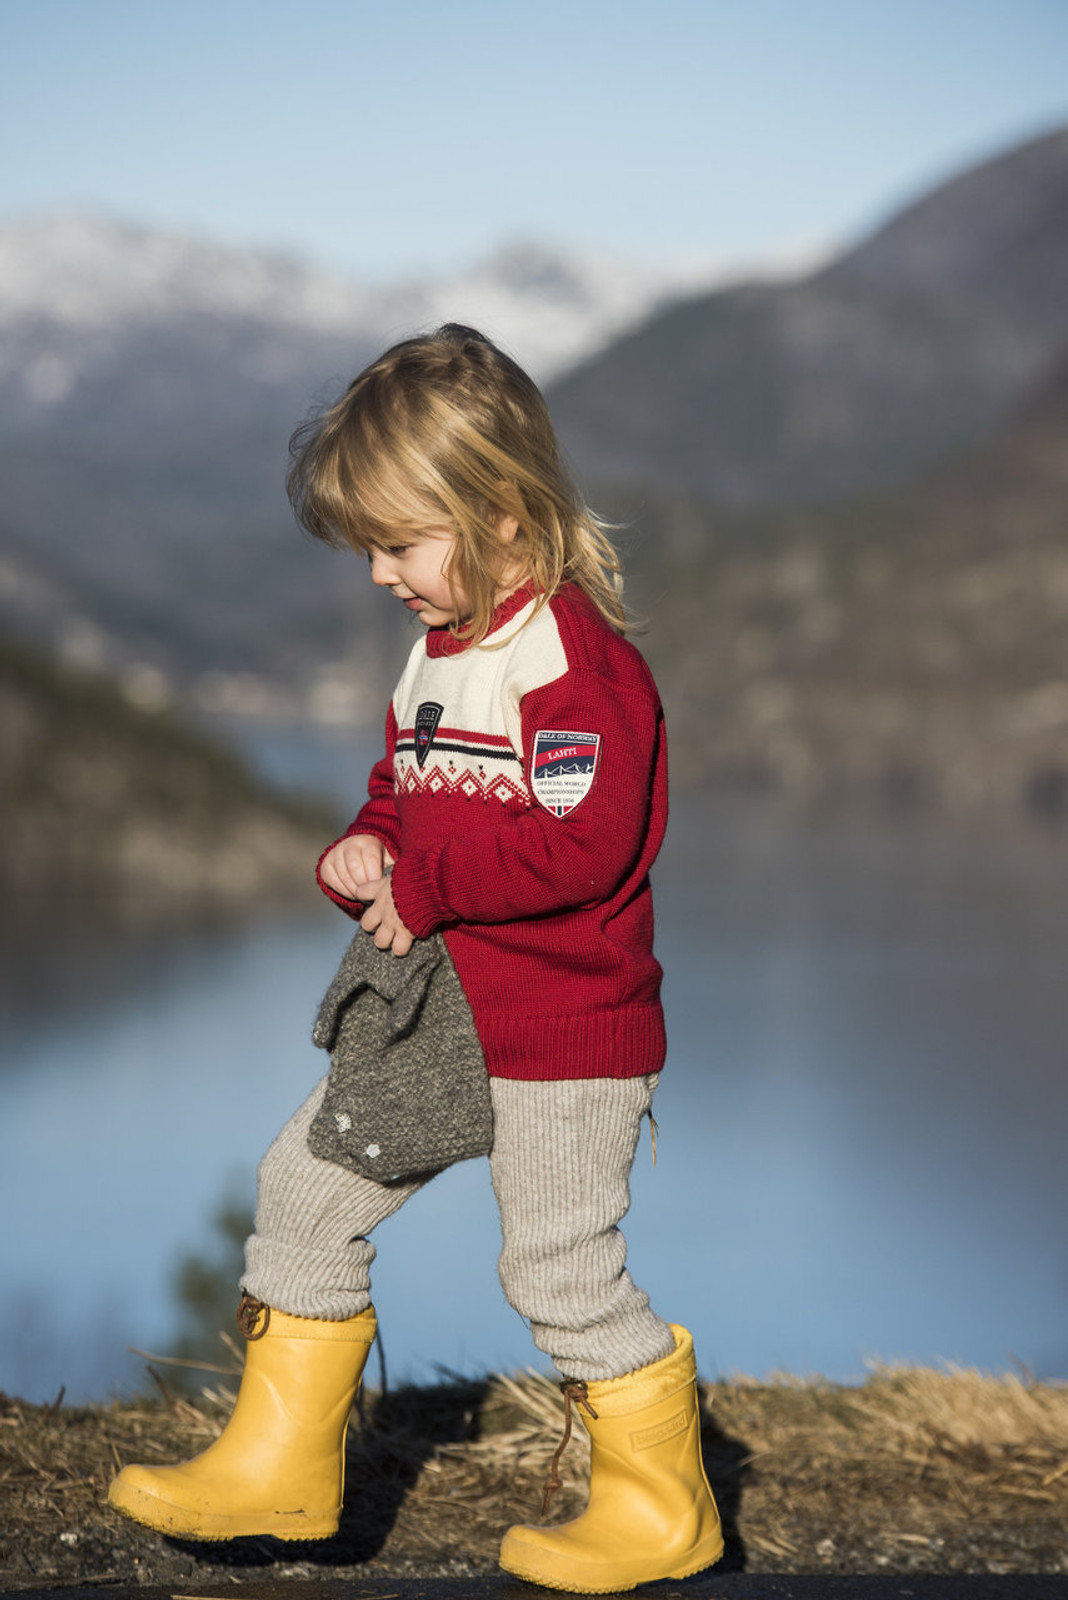 Young Girl walking by lakeside wearing Child wearing Dale of Norway, Lahti childrens sweater in Raspberry/Off White/Navy, 93311-B